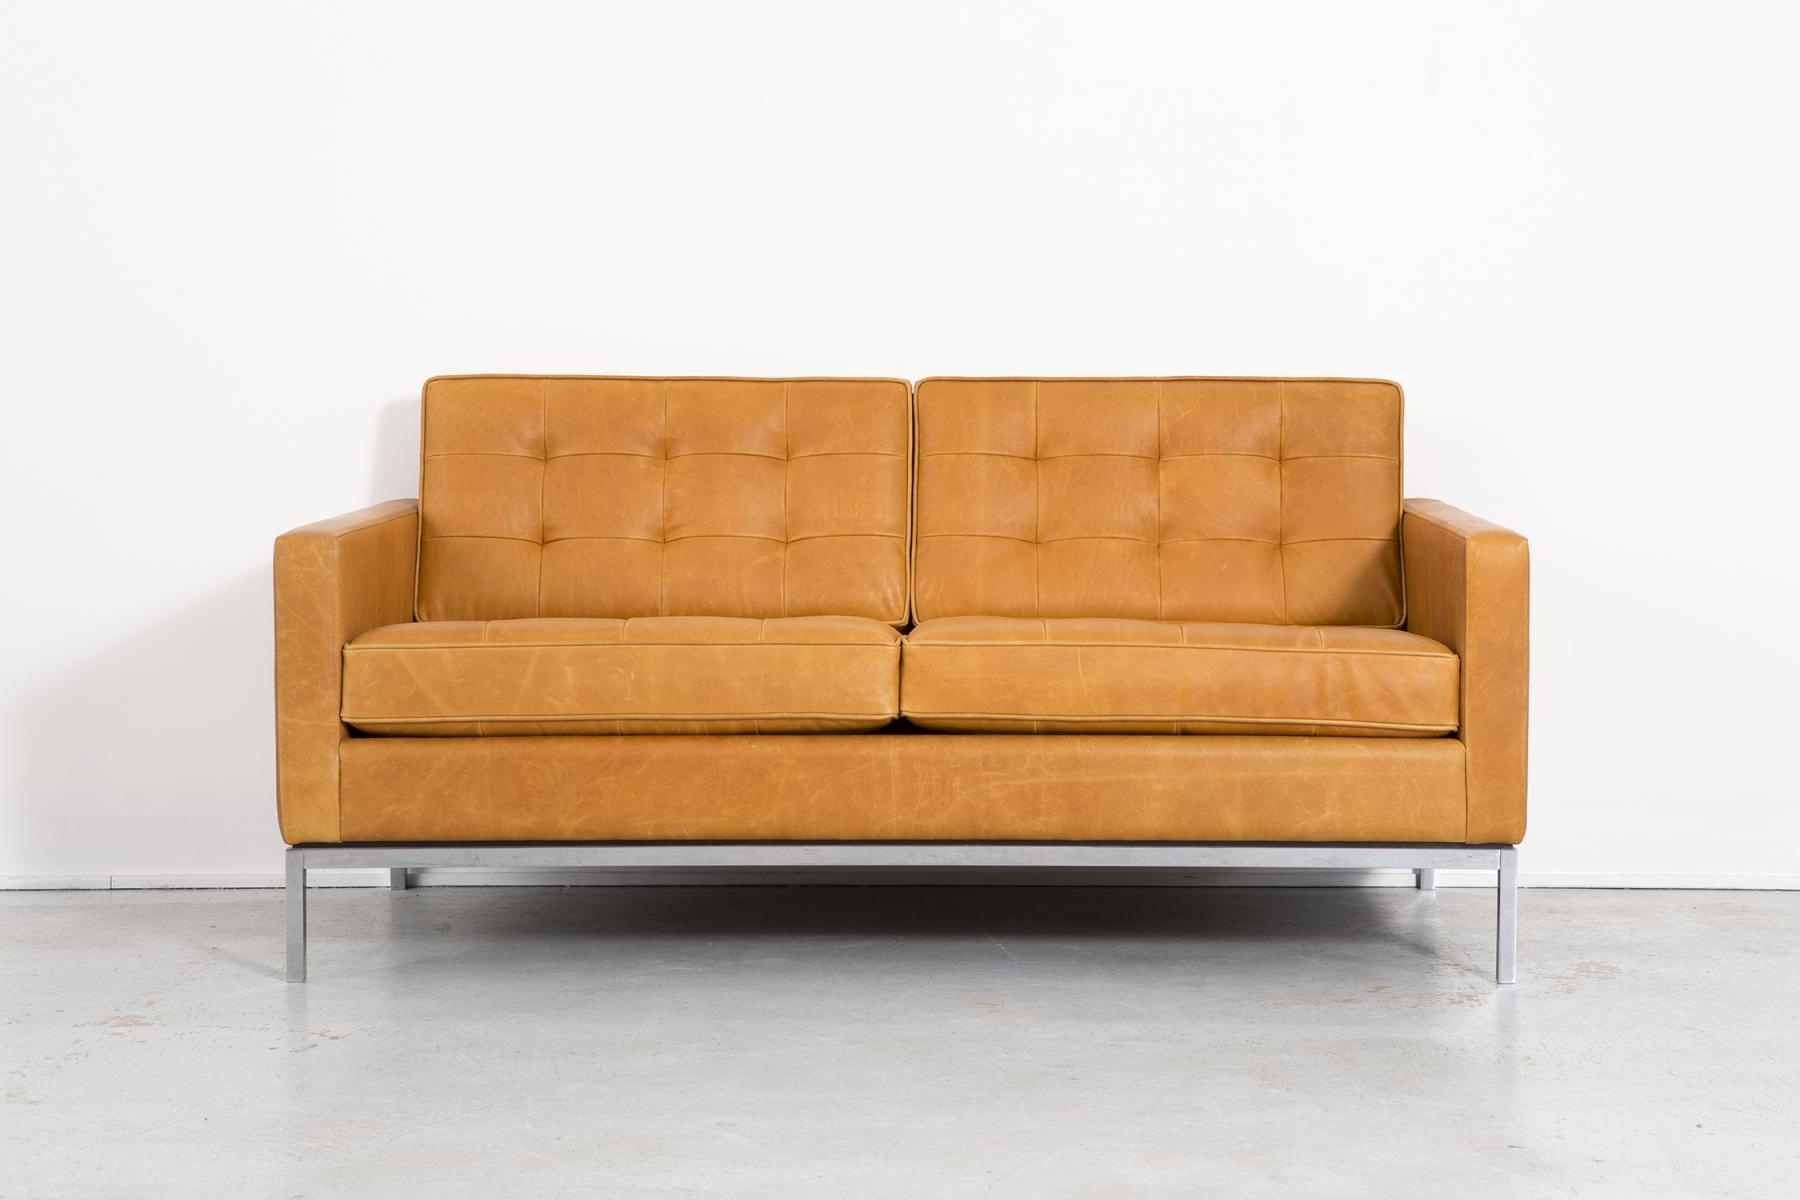 2018 Leather Sofaflorence Knoll Bassett For Knoll, 1970S For Sale Intended For Florence Large Sofas (View 8 of 15)